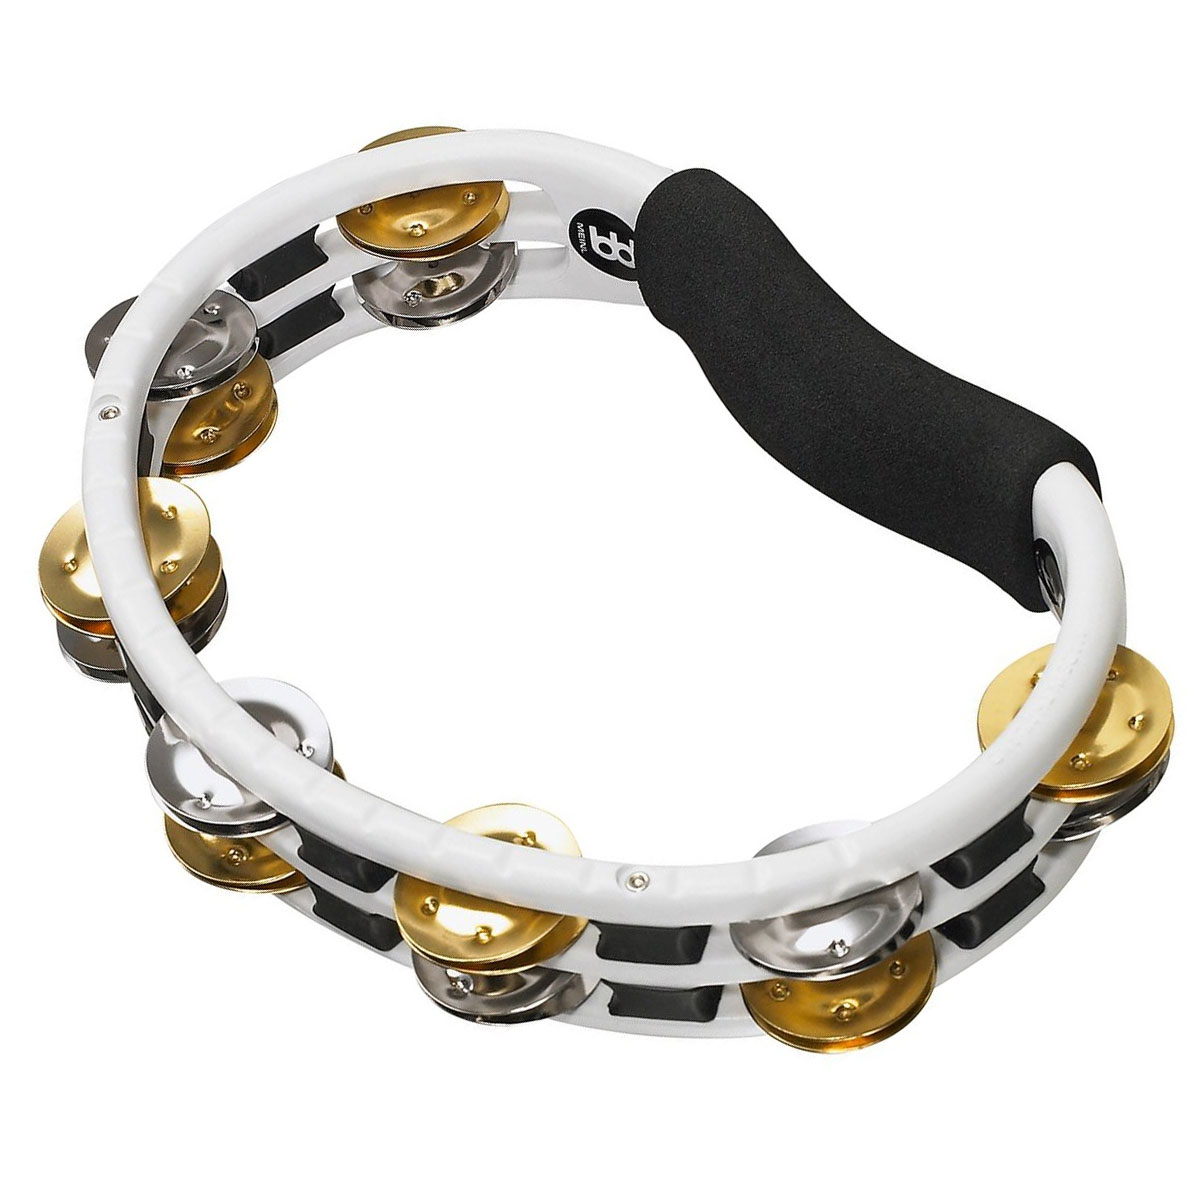 Meinl Handheld ABS Double Row Recording-Combo Steel & Brass Tambourine